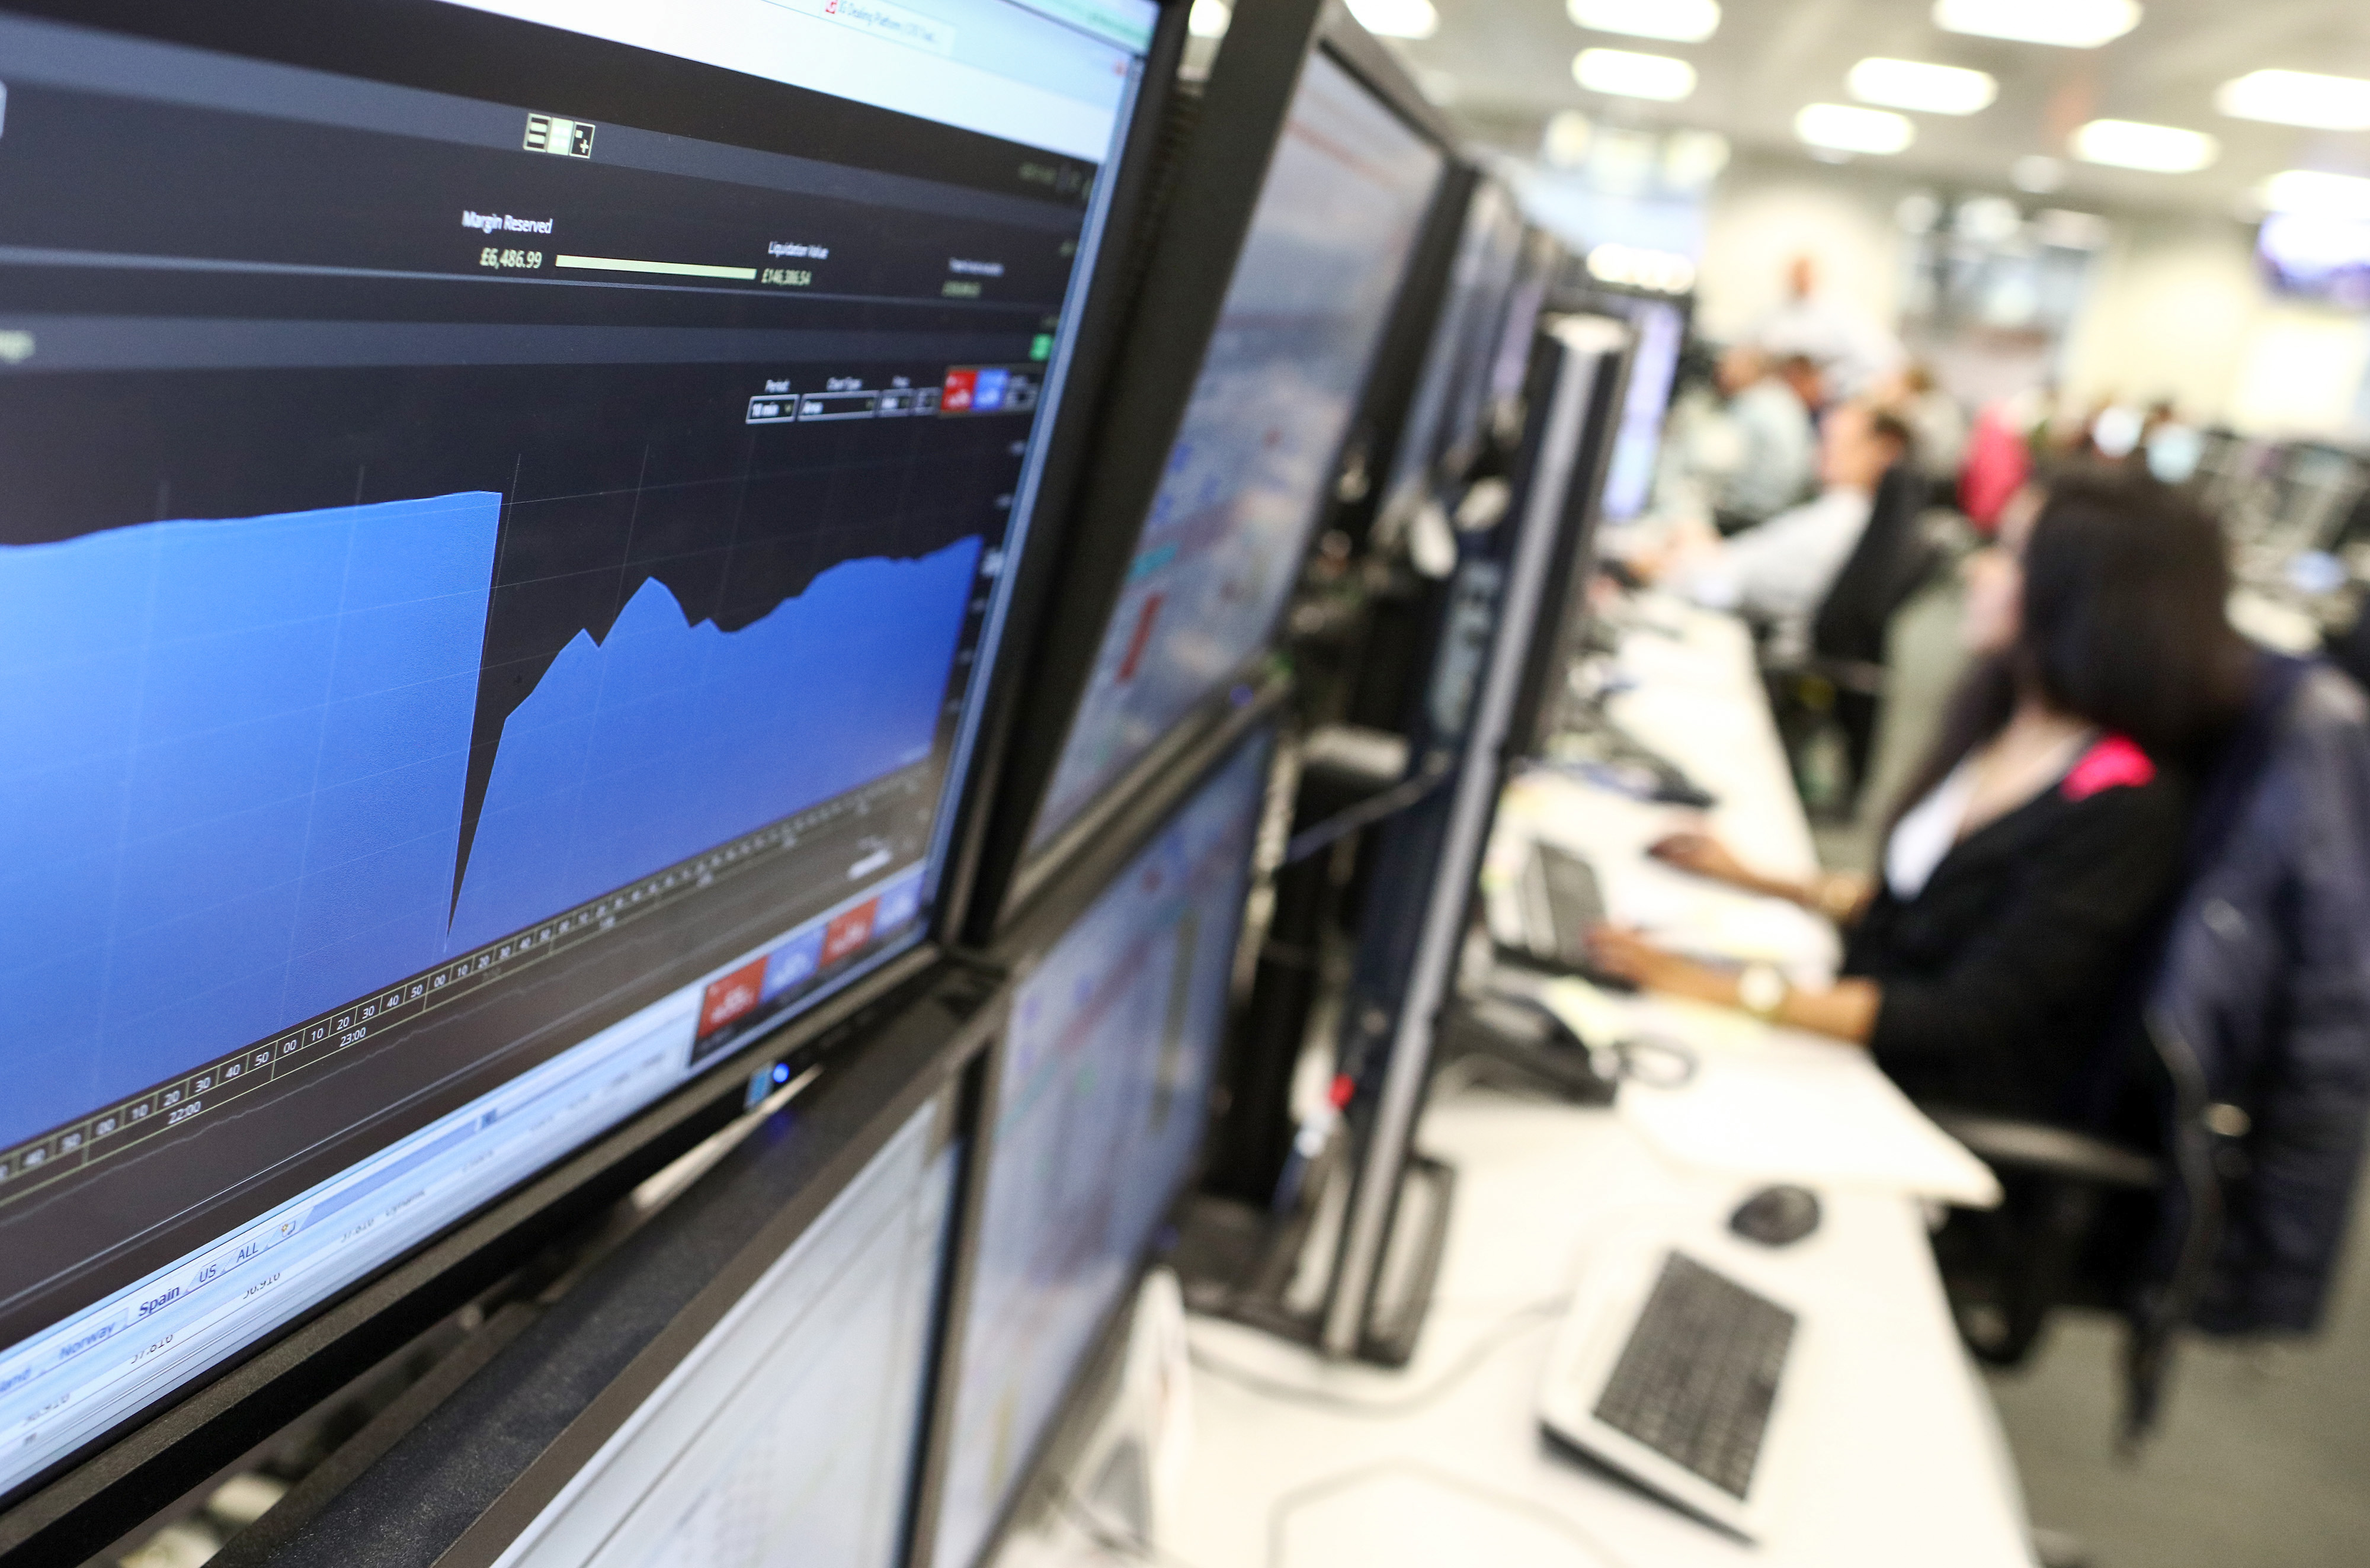 Bloomberg puts the power of Python in hedgers' hands